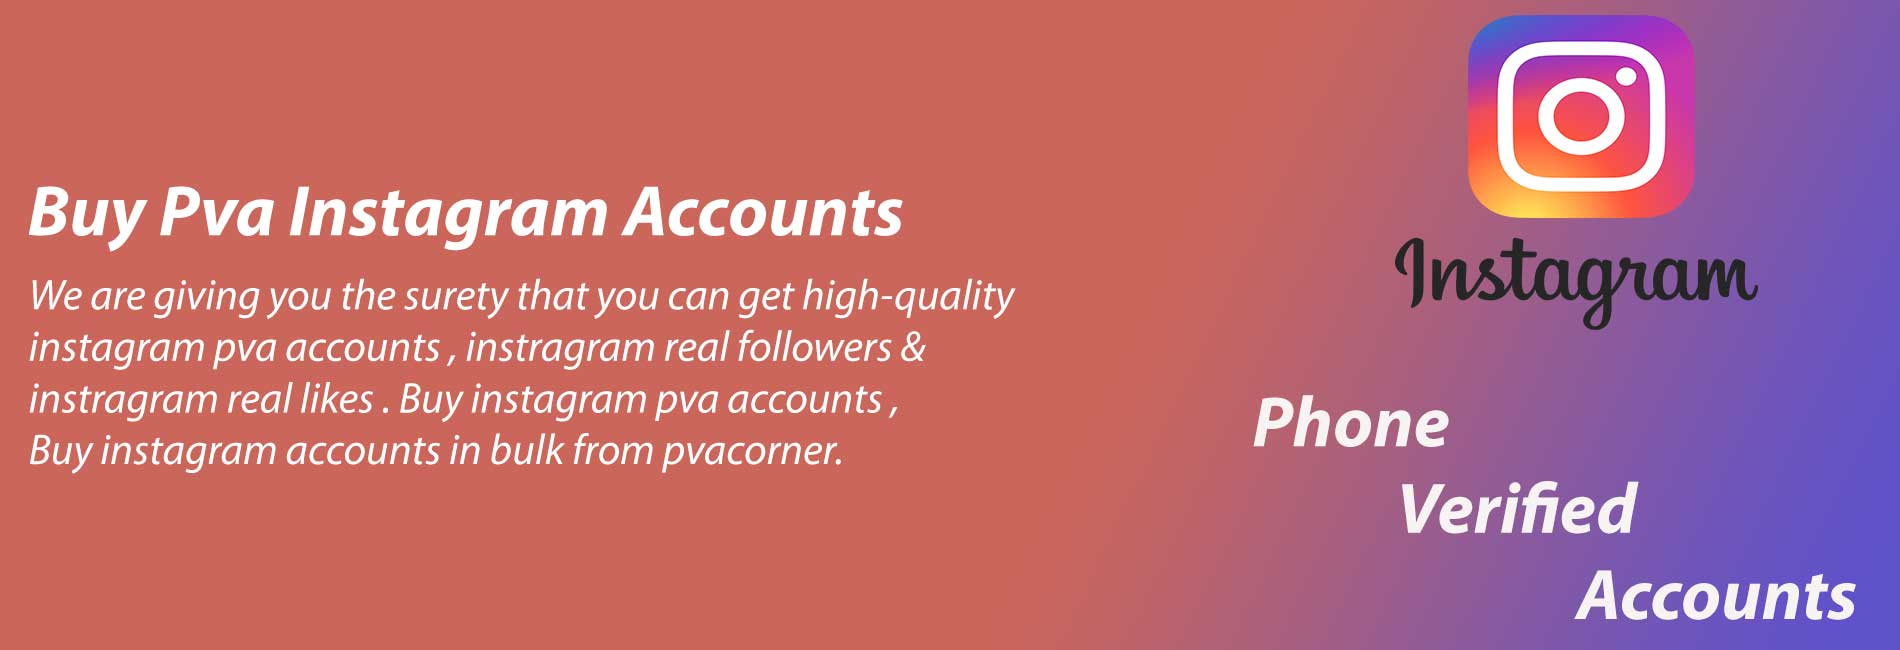 Pvacorner com: Buy Affordable PVA Accounts with Instant